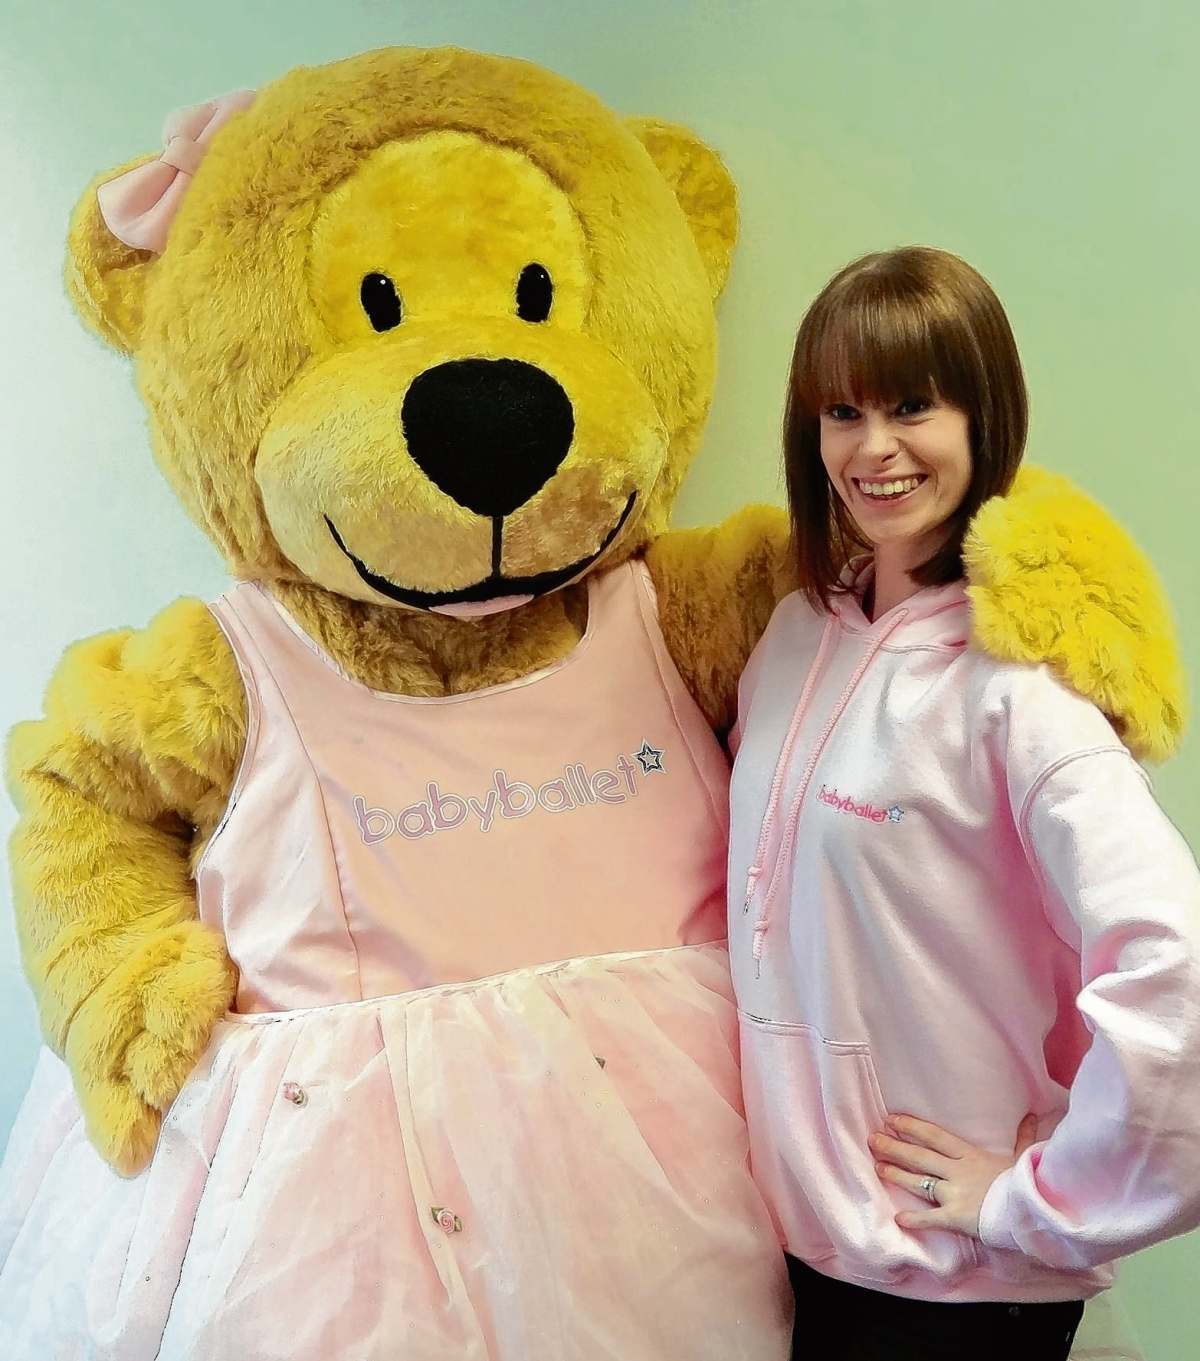 Catherine Segal with Twinkle the Baby Ballet mascot